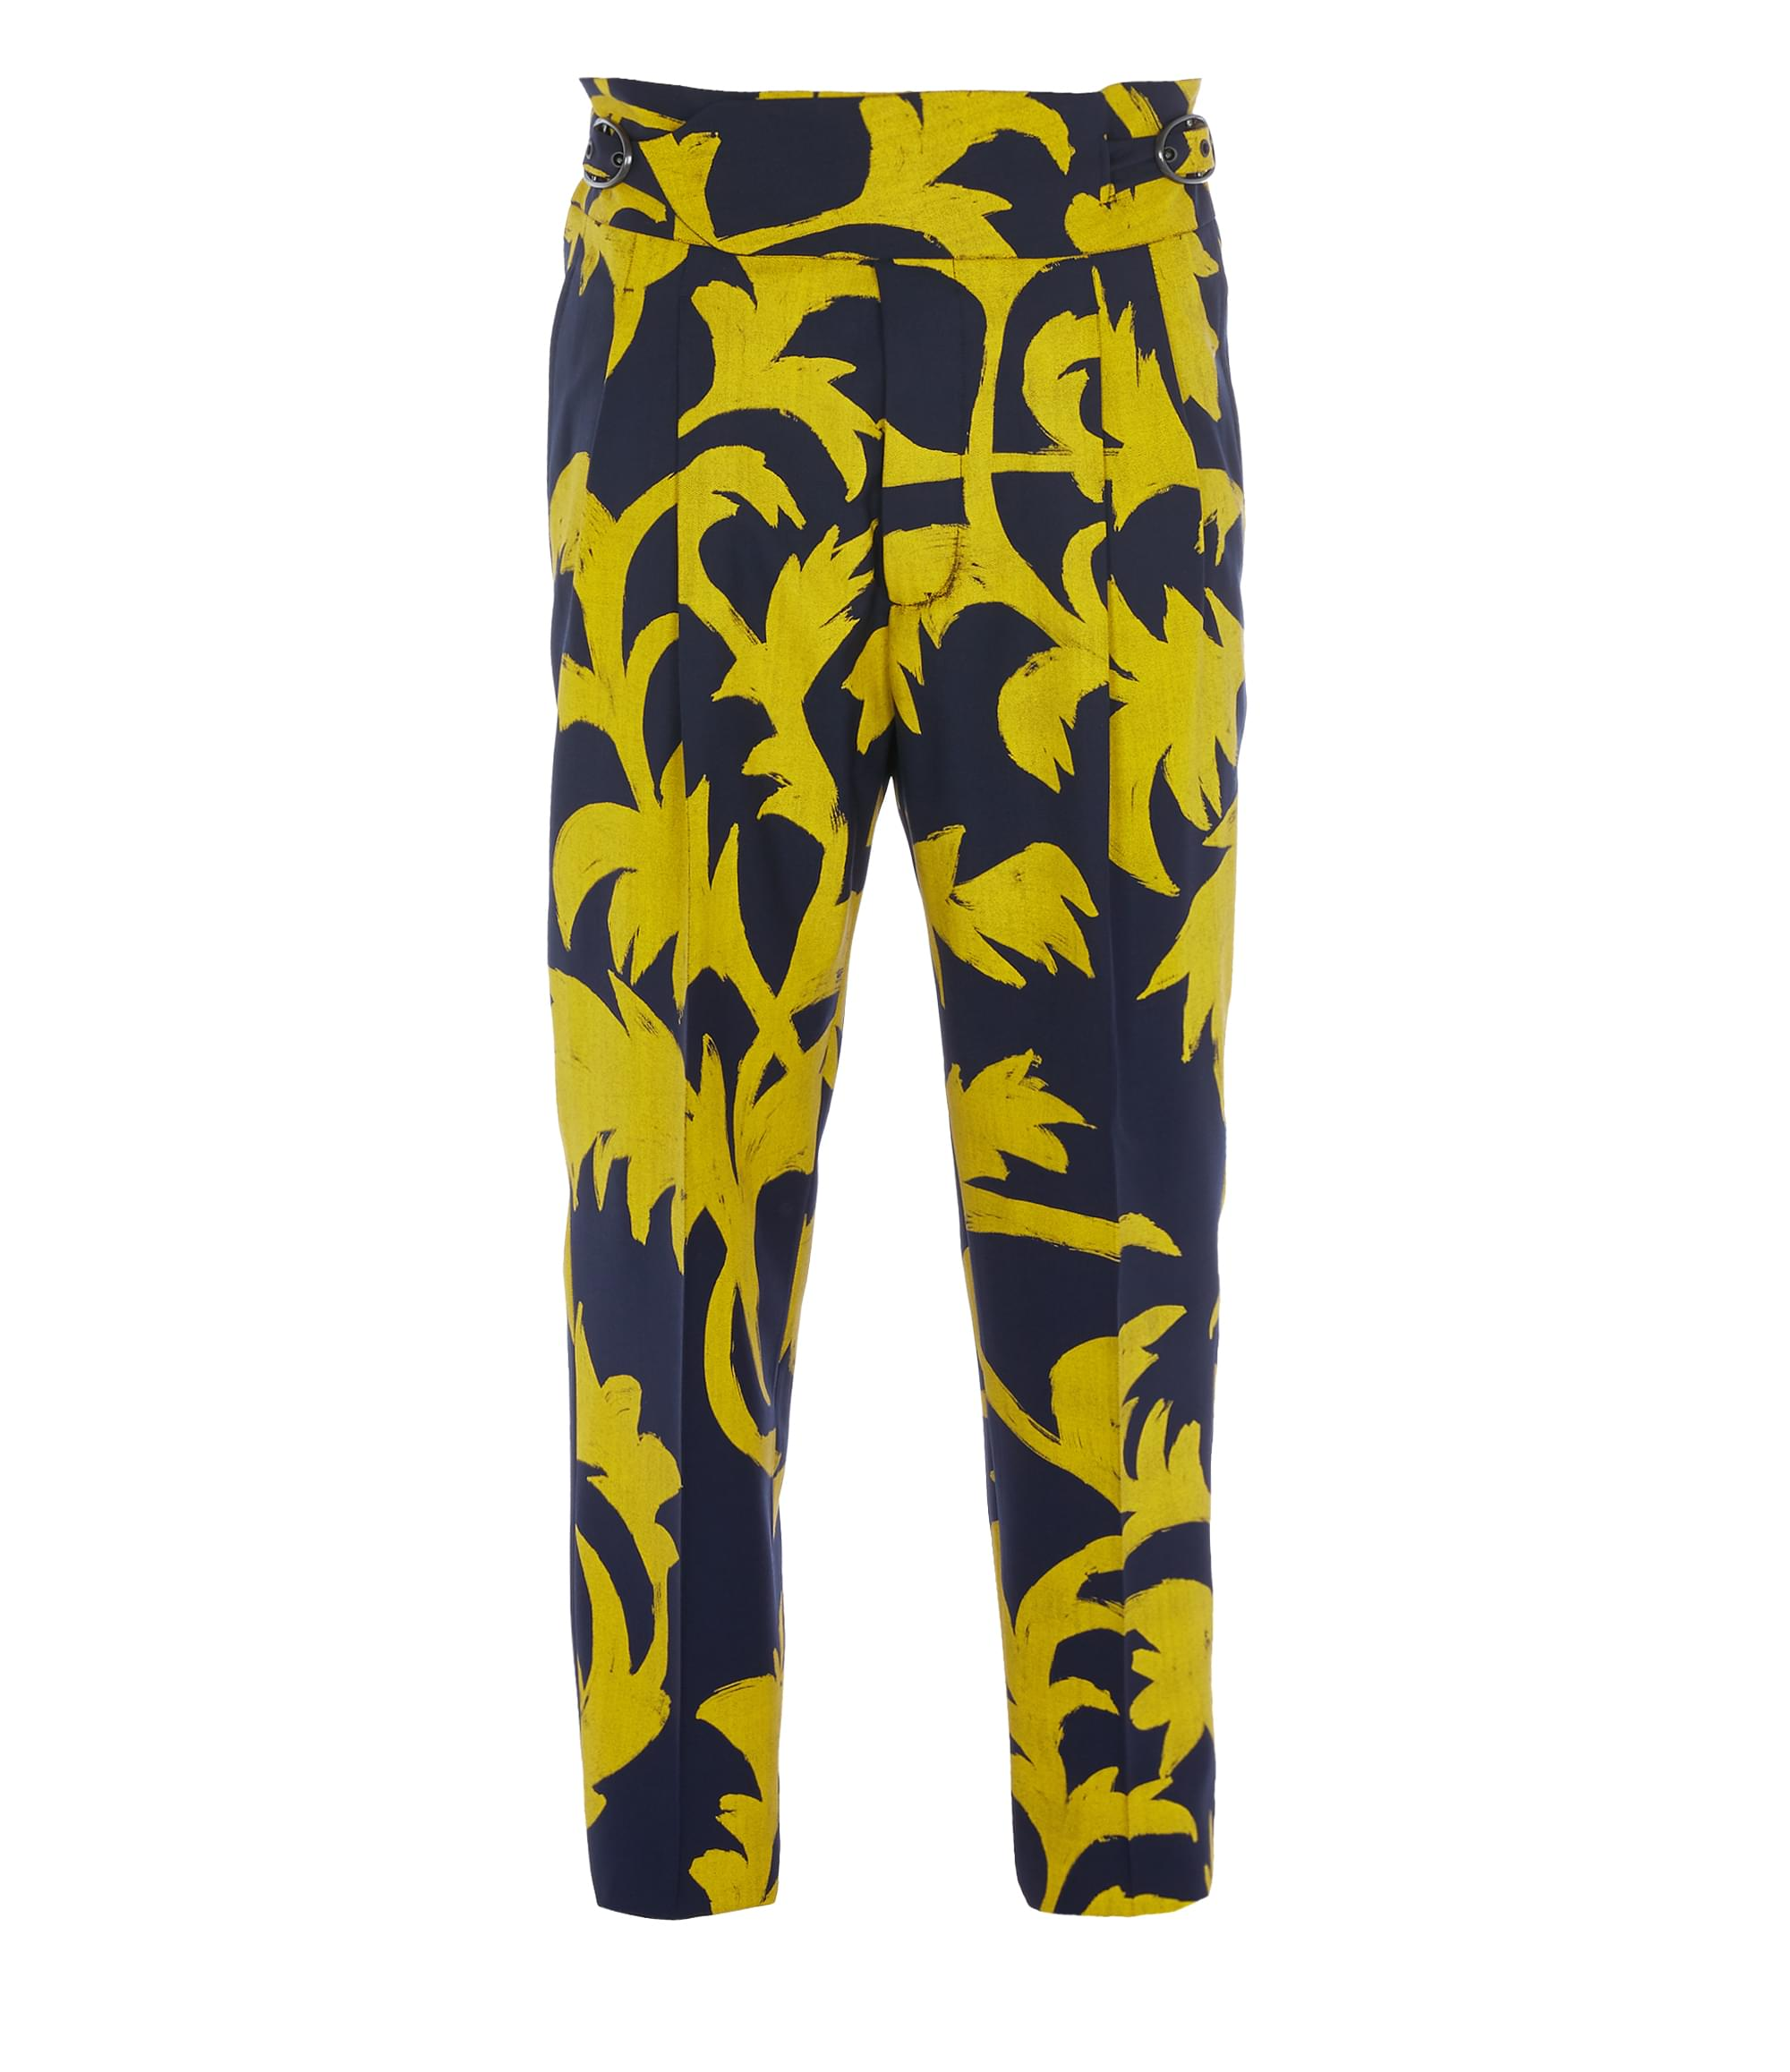 Vivienne Westwood New Classic Trousers Navy Print